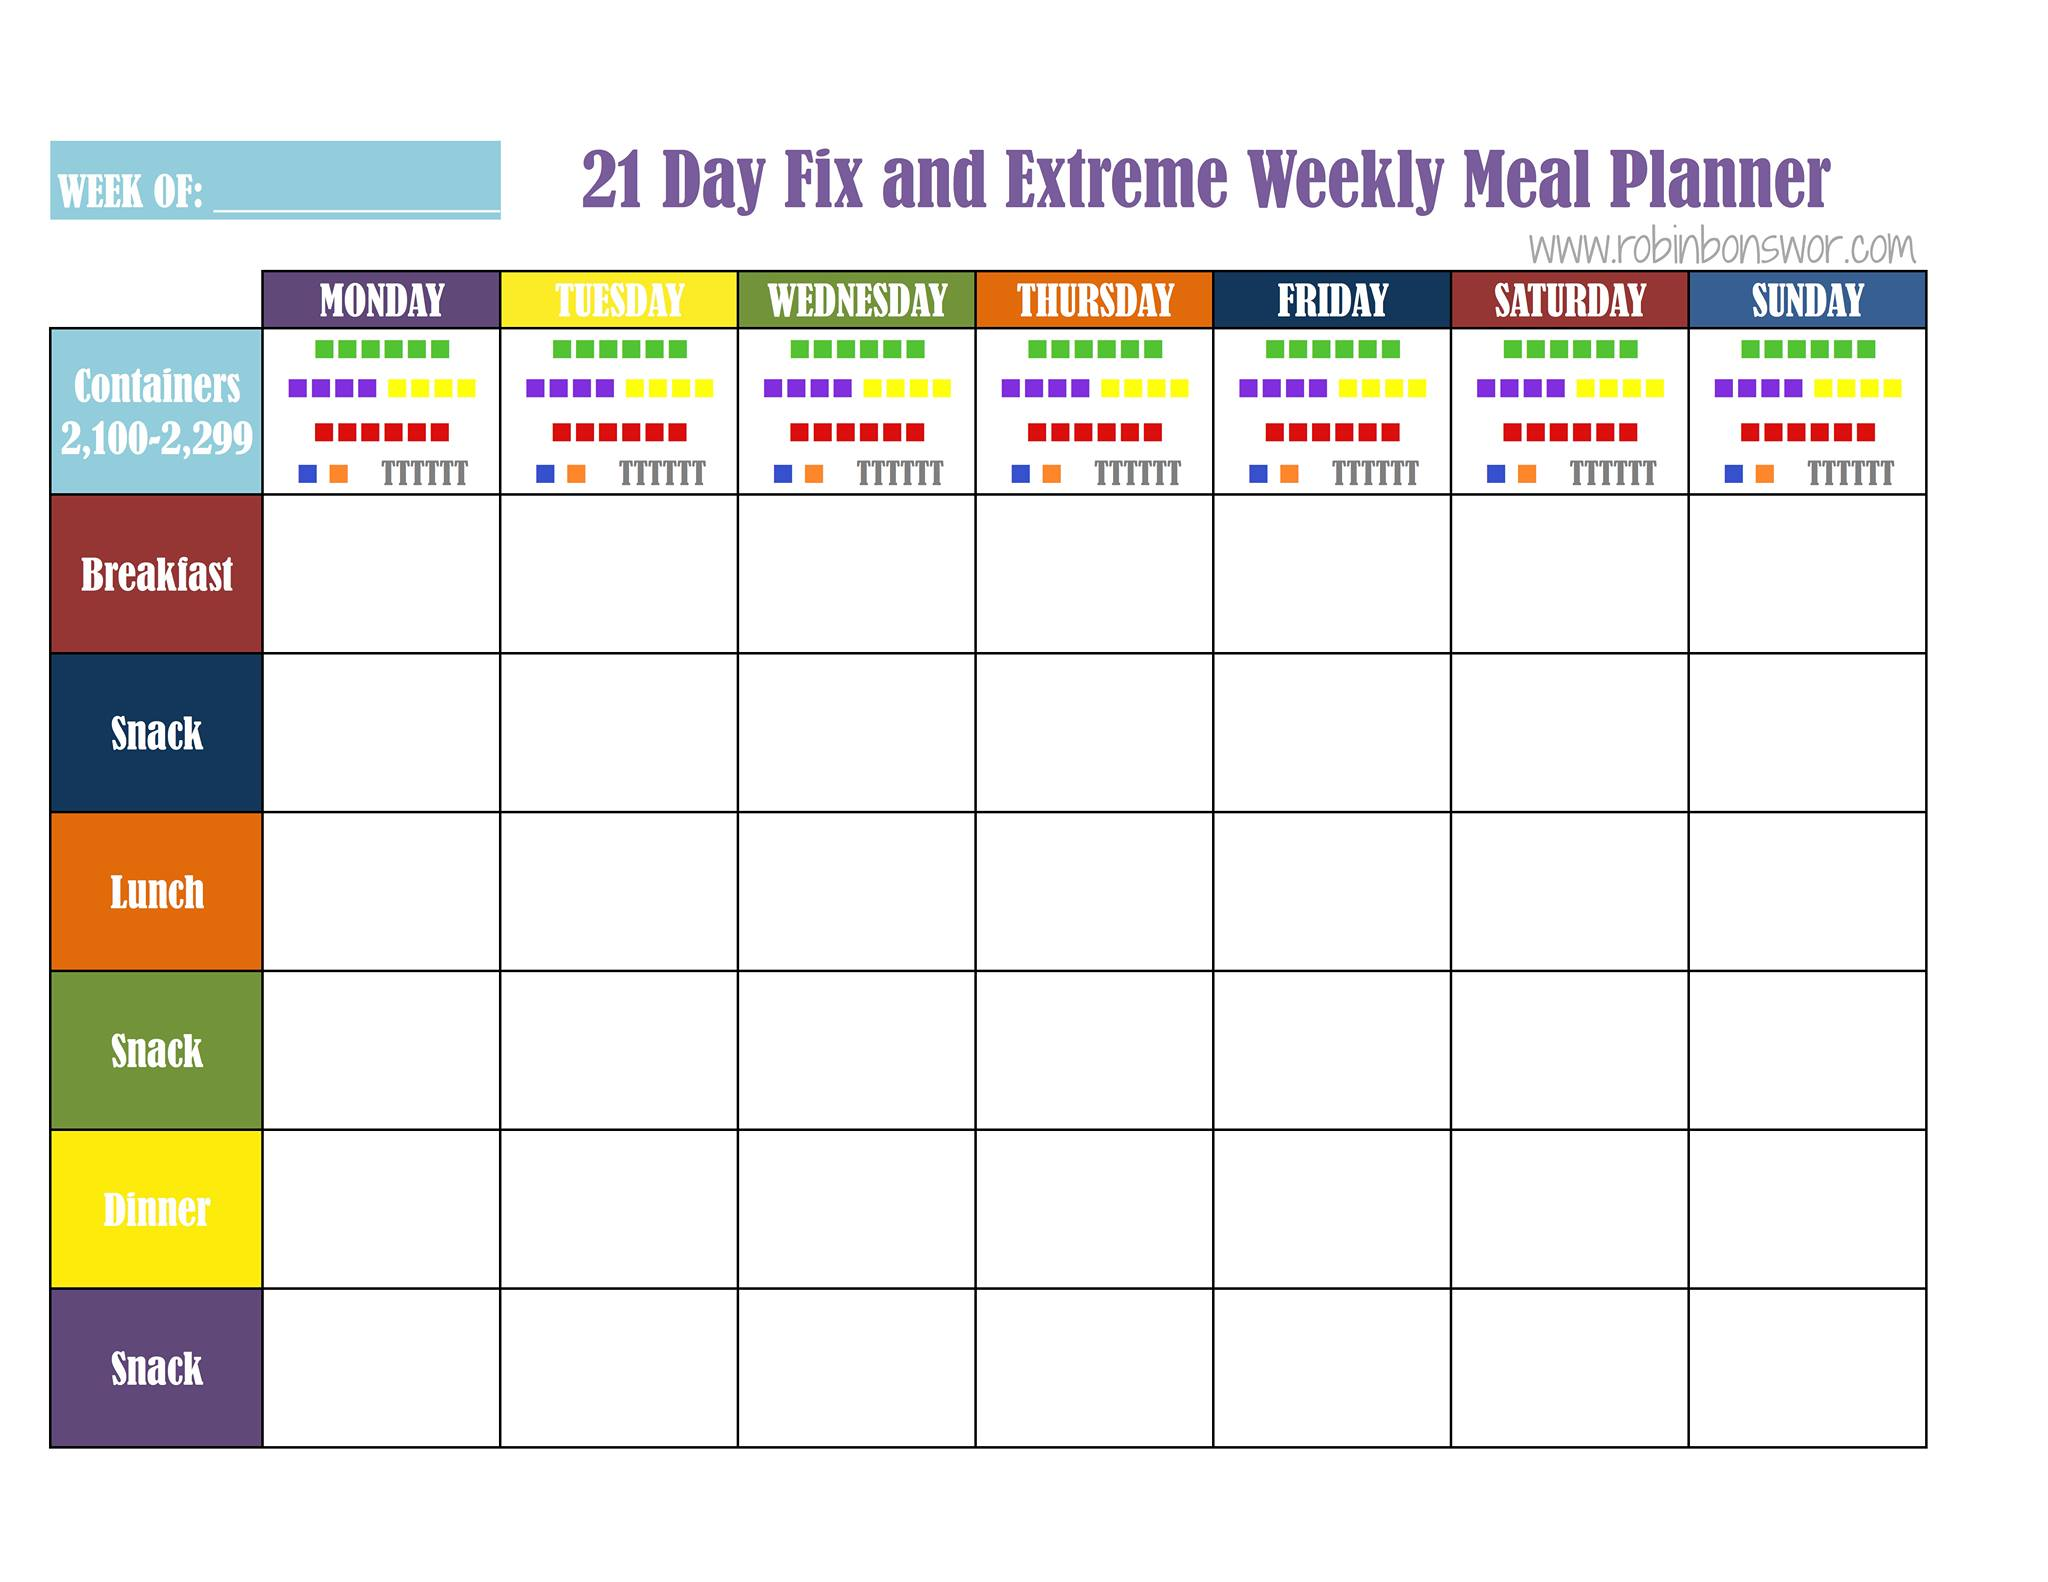 How to meal plan for the 21 Day Fix